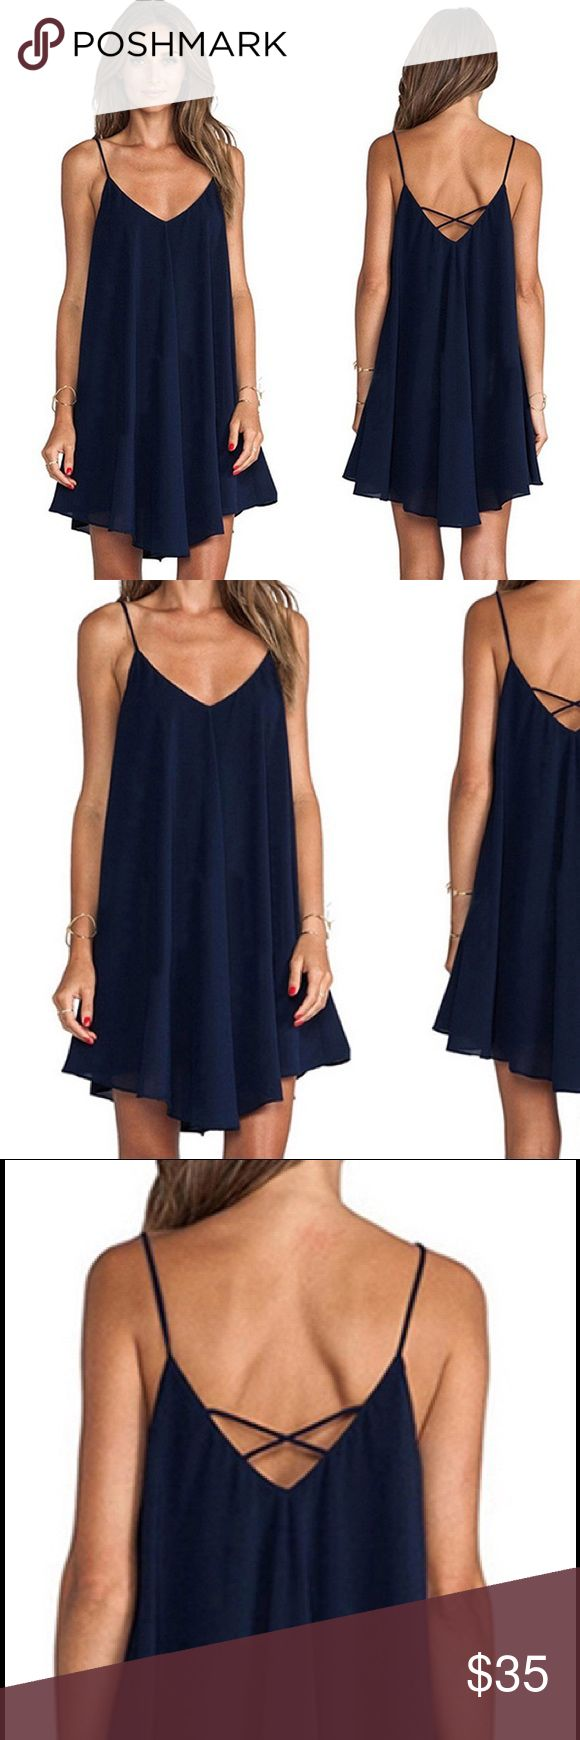 """New❗️""""Julia"""" ll Navy Chiffon Criss-Cross Dress  The """"Julia"""" dress is a navy-colored chiffon spaghetti strap dress. Adorable cross-cross back. Scoop-neck front. As the last photo shows, the dress is lined up until mid thigh for a little added sexiness. This is a dress sure to flatter any body type.  Dresses Midi"""